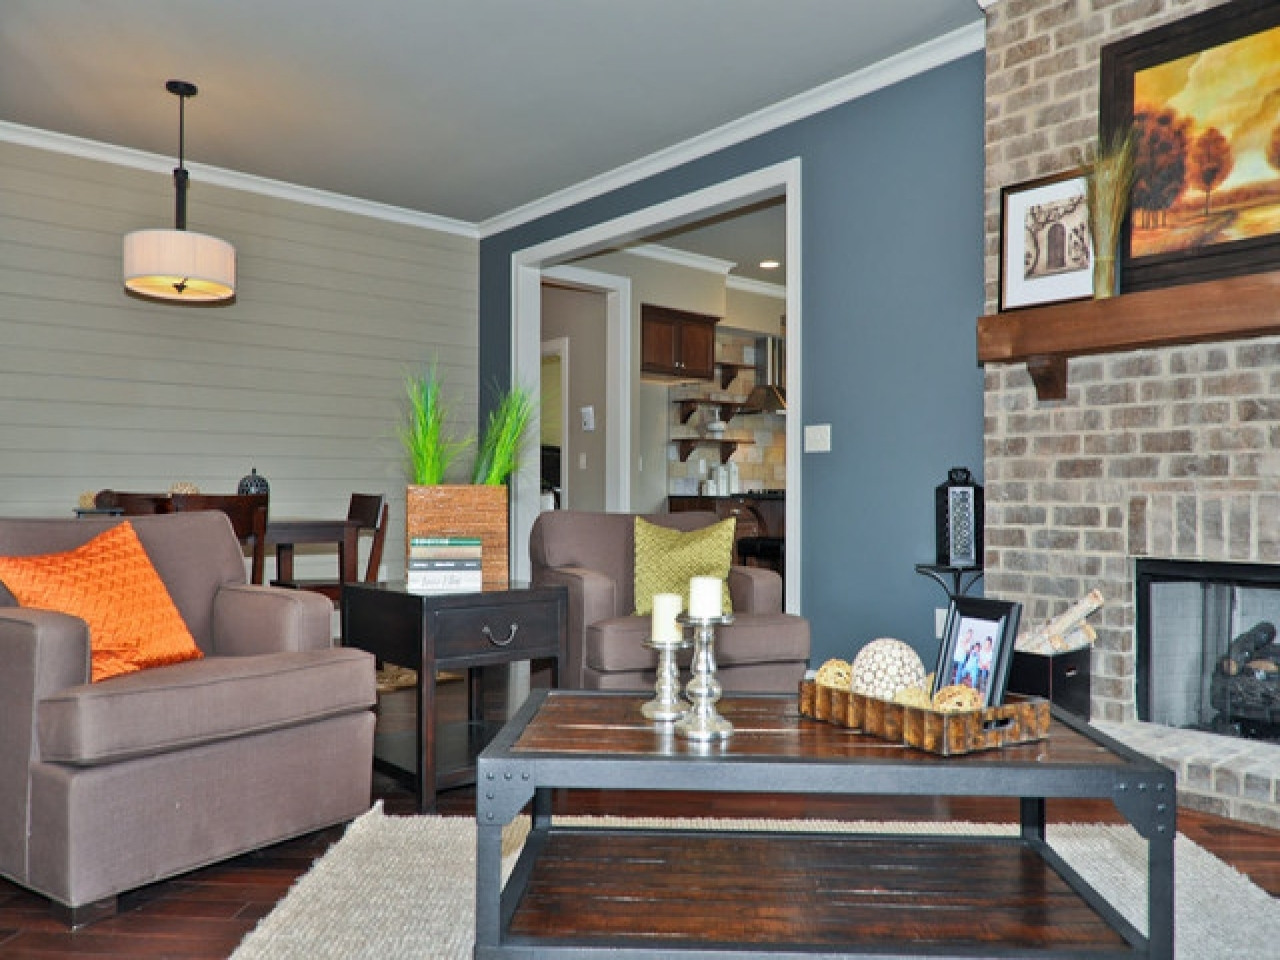 Living Room Blue Walls Light Ideas Wall Decor Color With Brown Within Newest Wall Accents For Tan Room (Gallery 5 of 15)